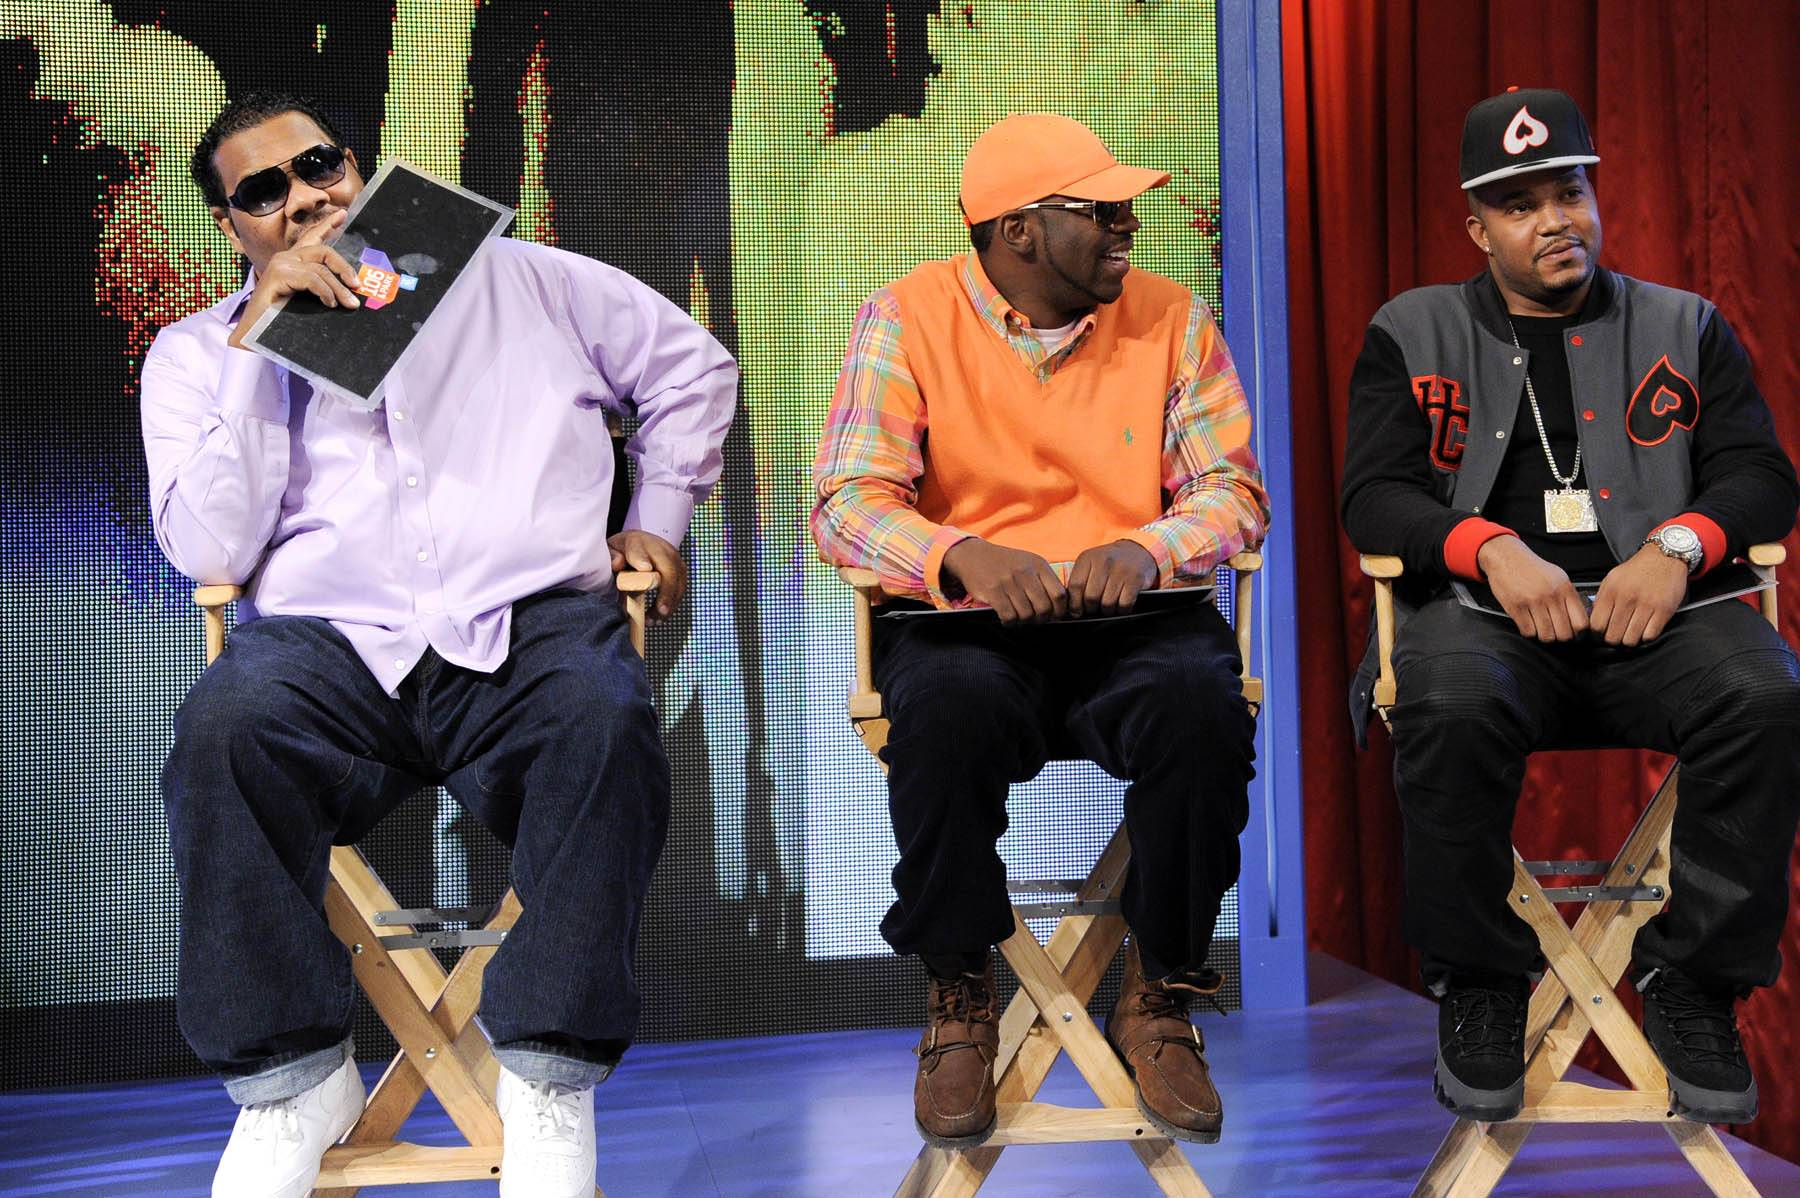 Bring Them Out - Freestyle Friday judges Fatman Scoop, Young Dro and DJ Boof at 106 & Park, January 27, 2012. (Photo: John Ricard / BET)